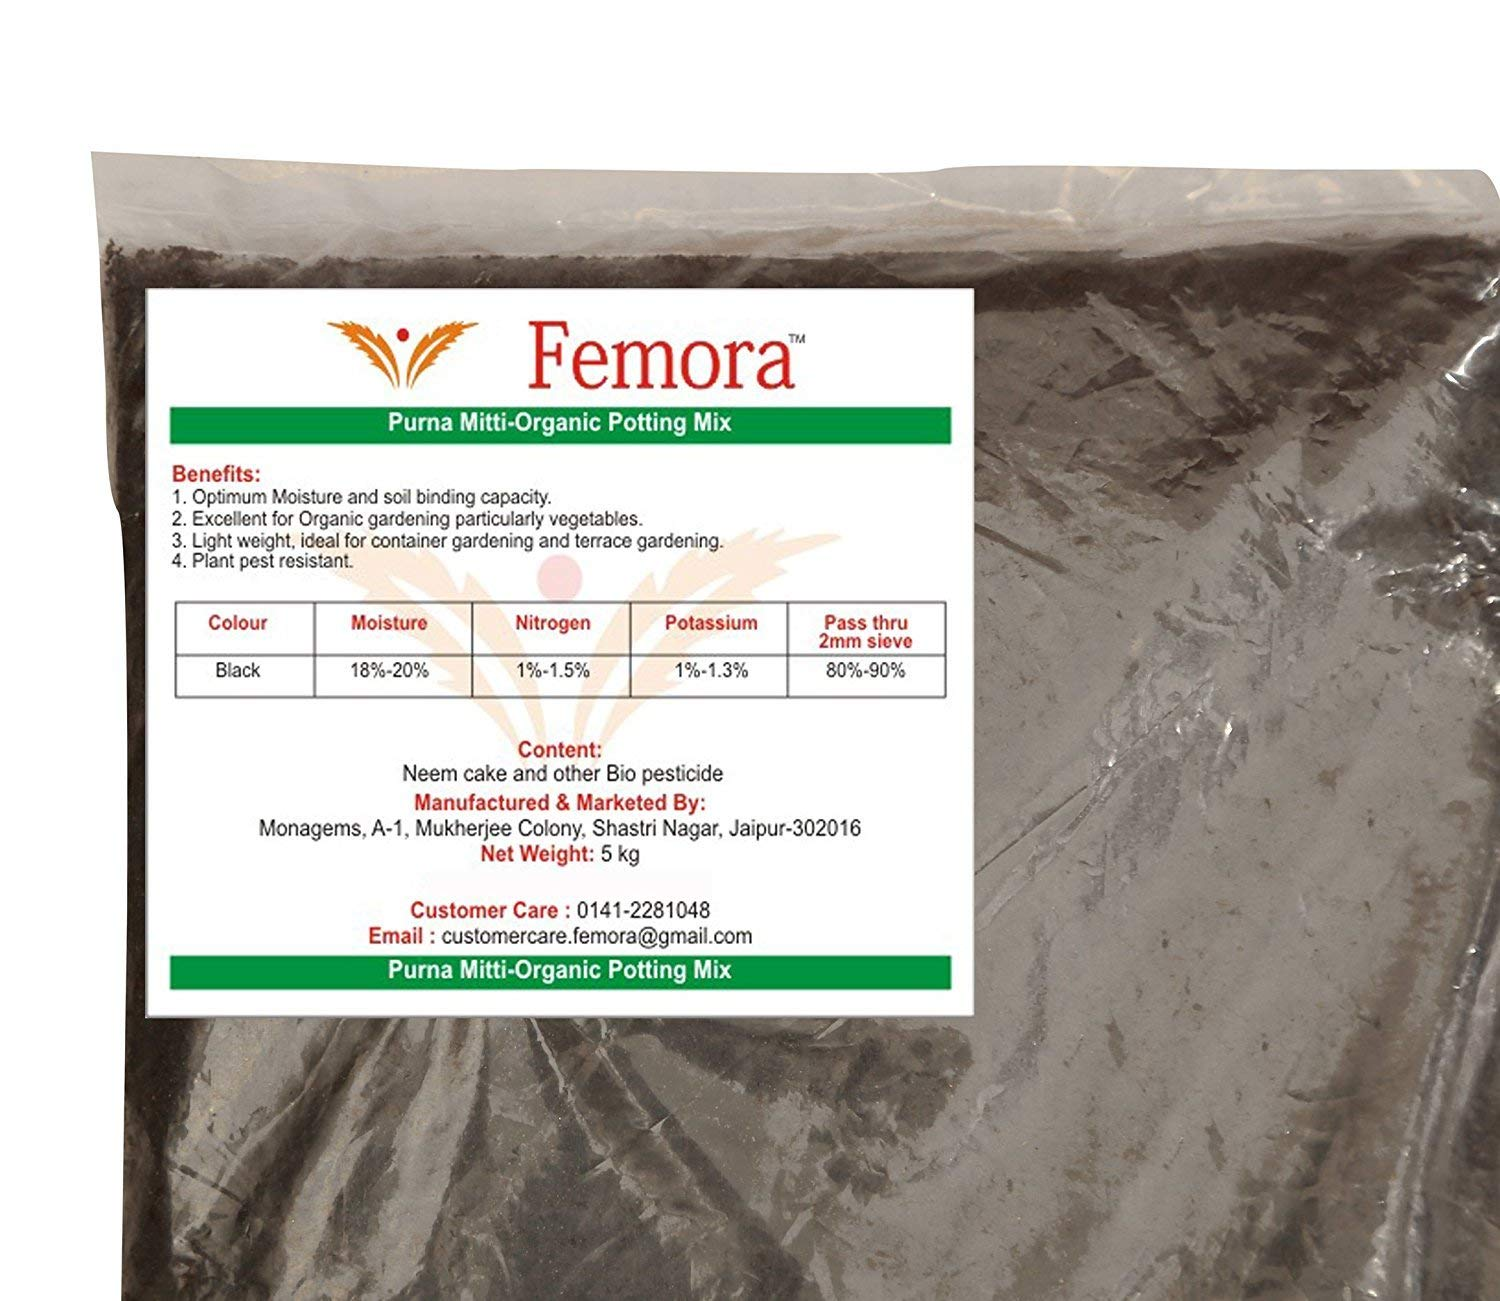 Femora All Purpose Premium Potting Mix/Pot Mix/Garden Manure/Ready to Plant Purani Mitti- 5 Kg X 3 = 15Kg